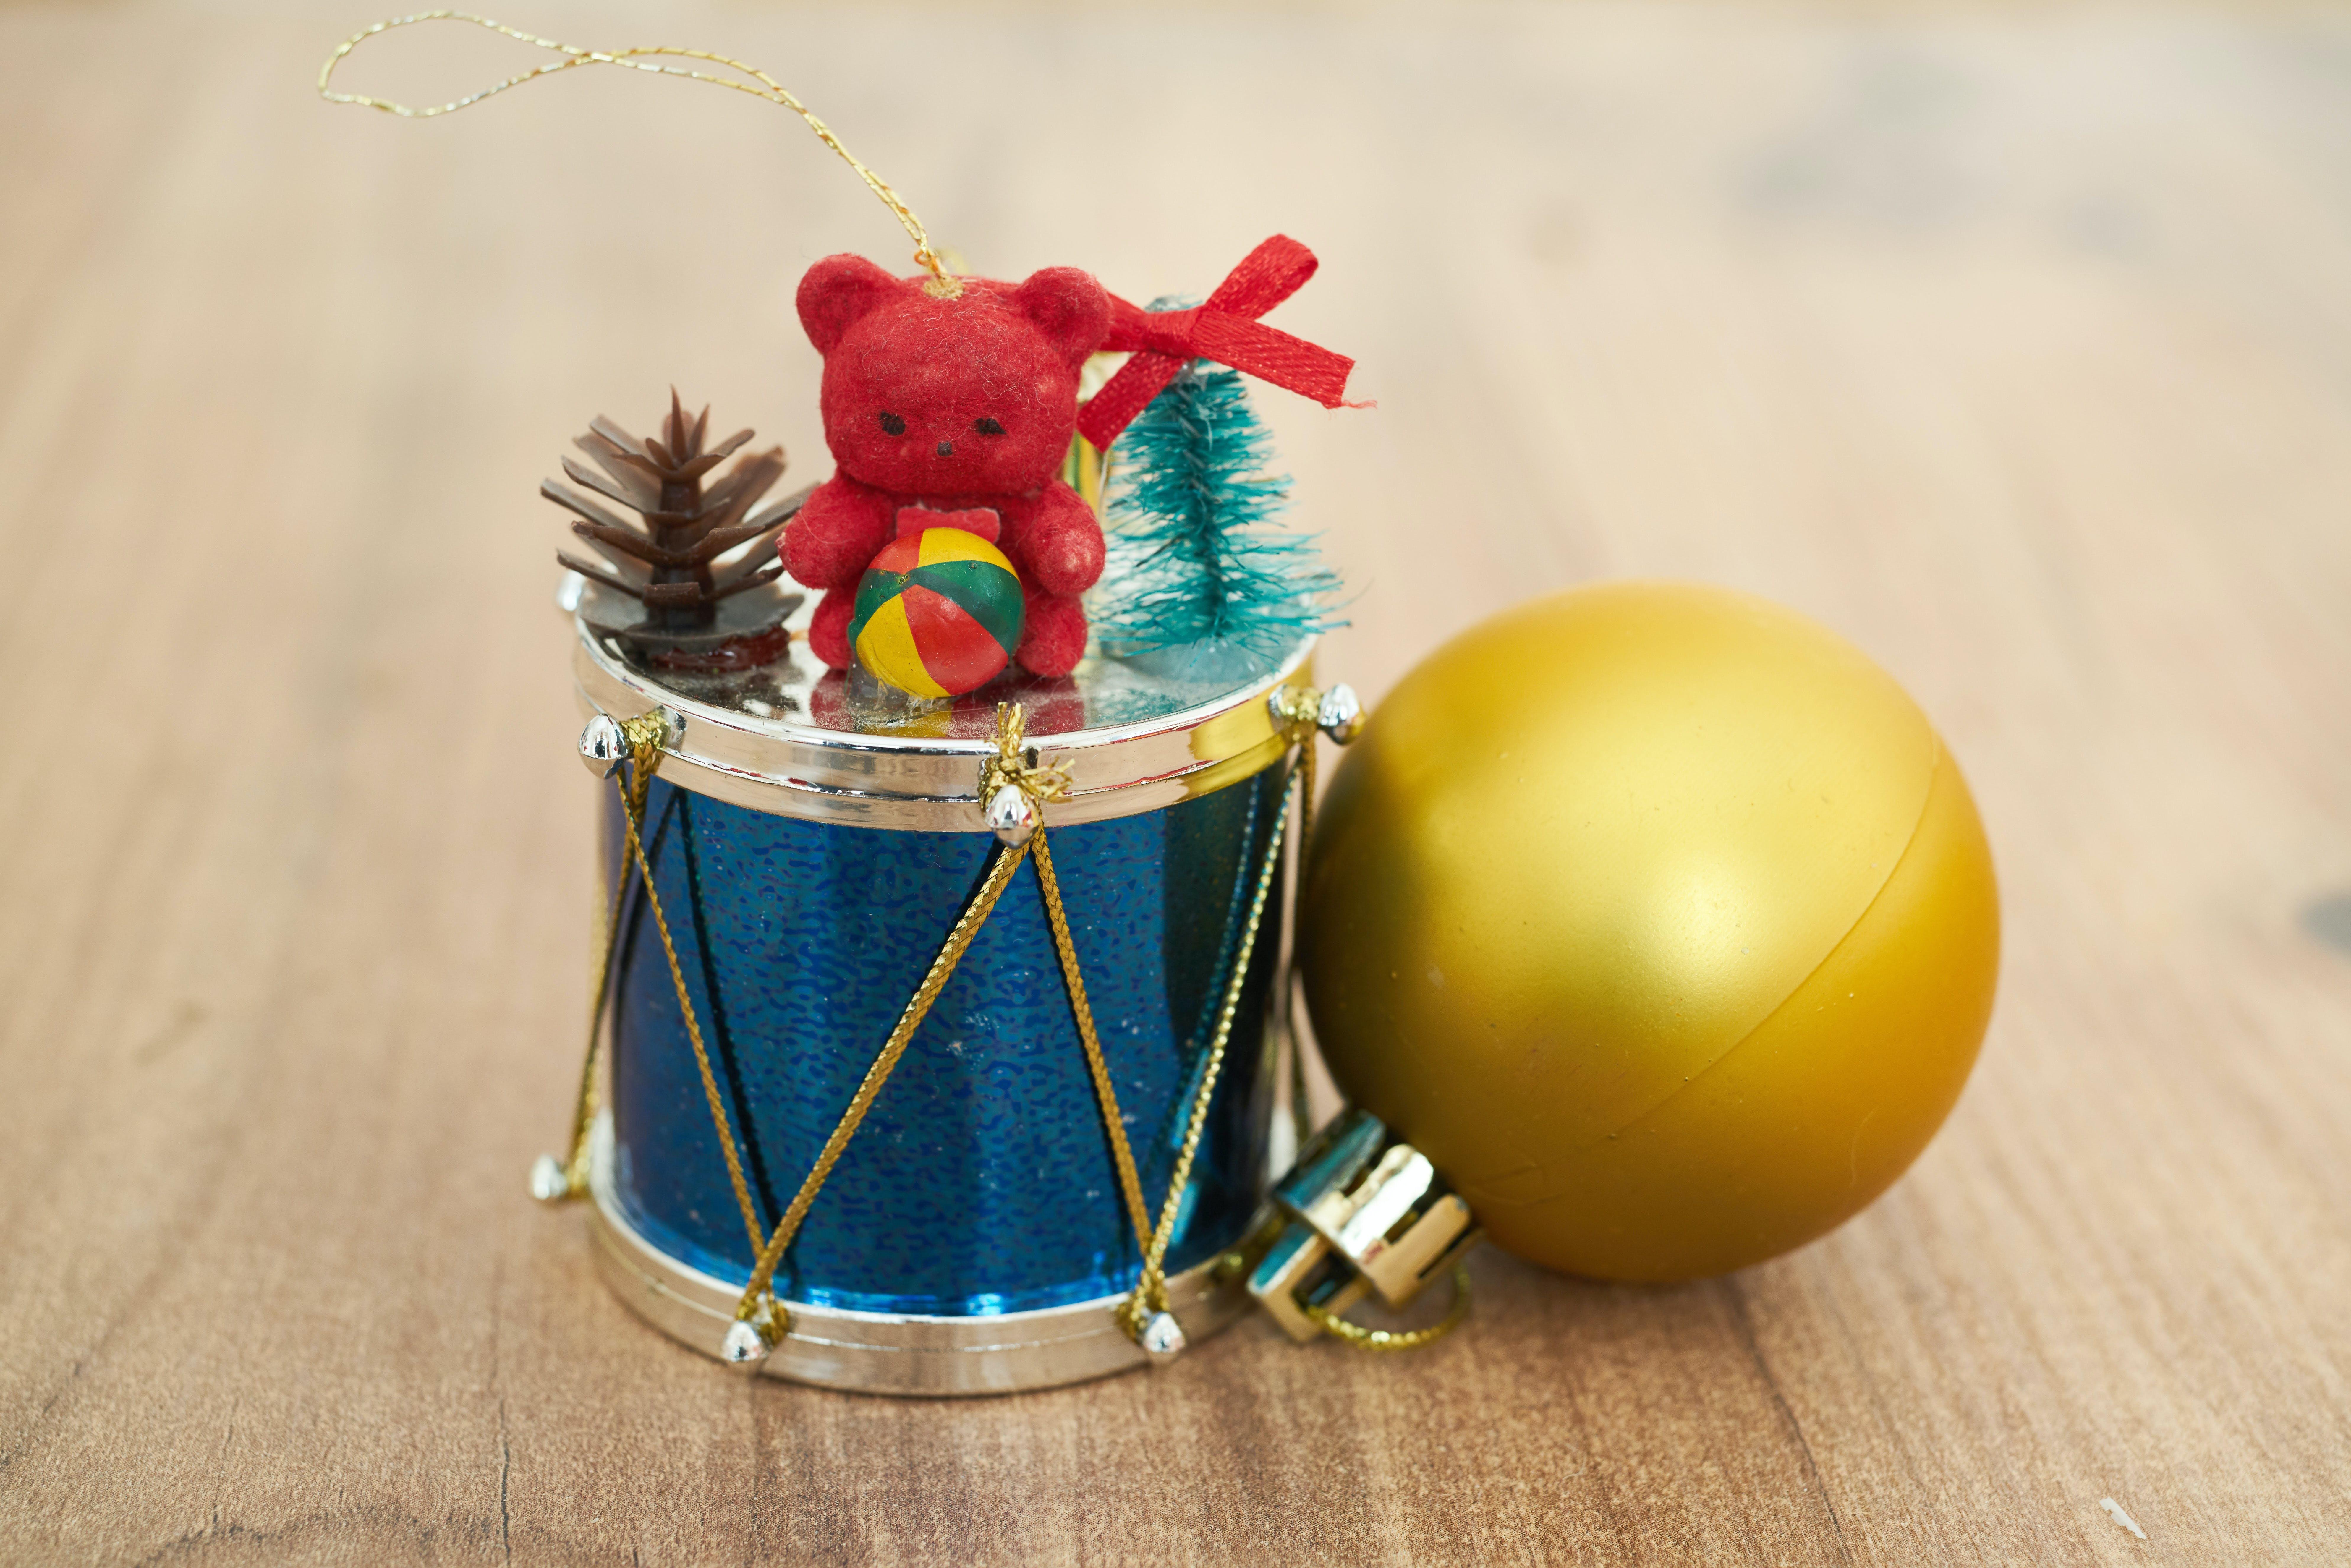 Blue Drum and Yellow Ornaments Placed on Wood